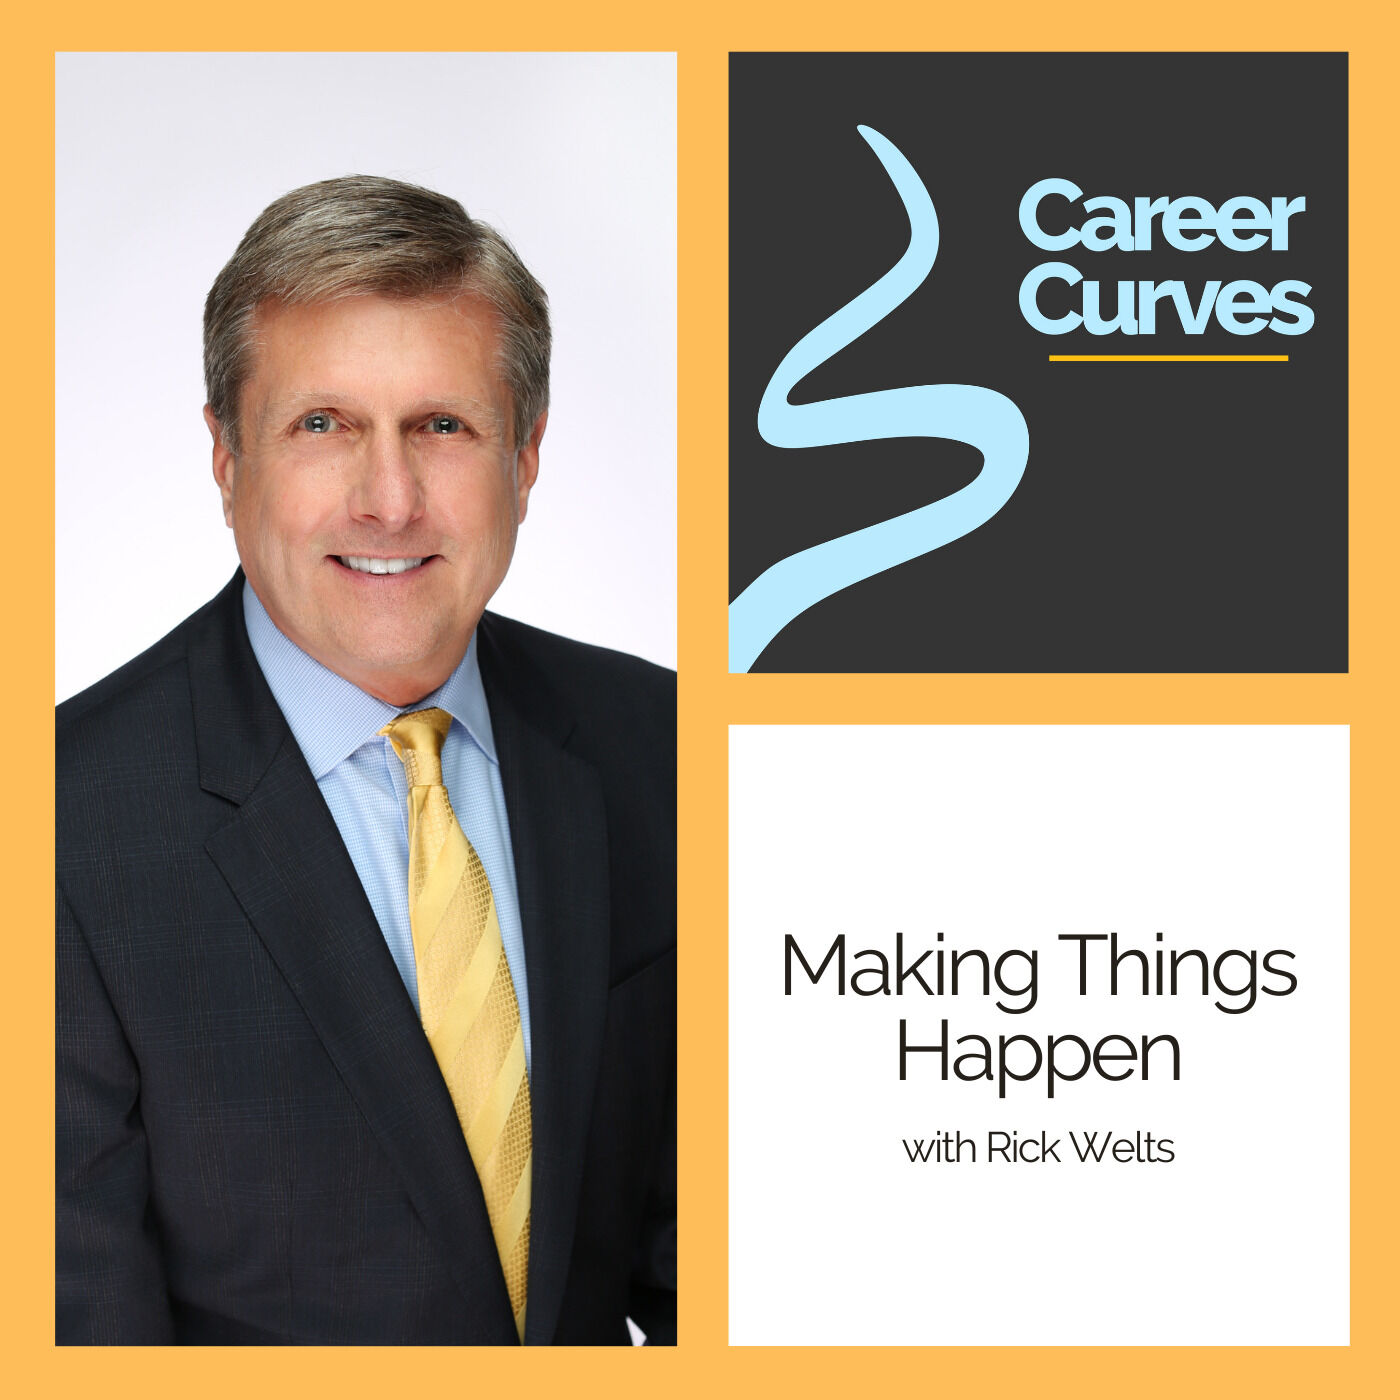 Making Things Happen with Rick Welts